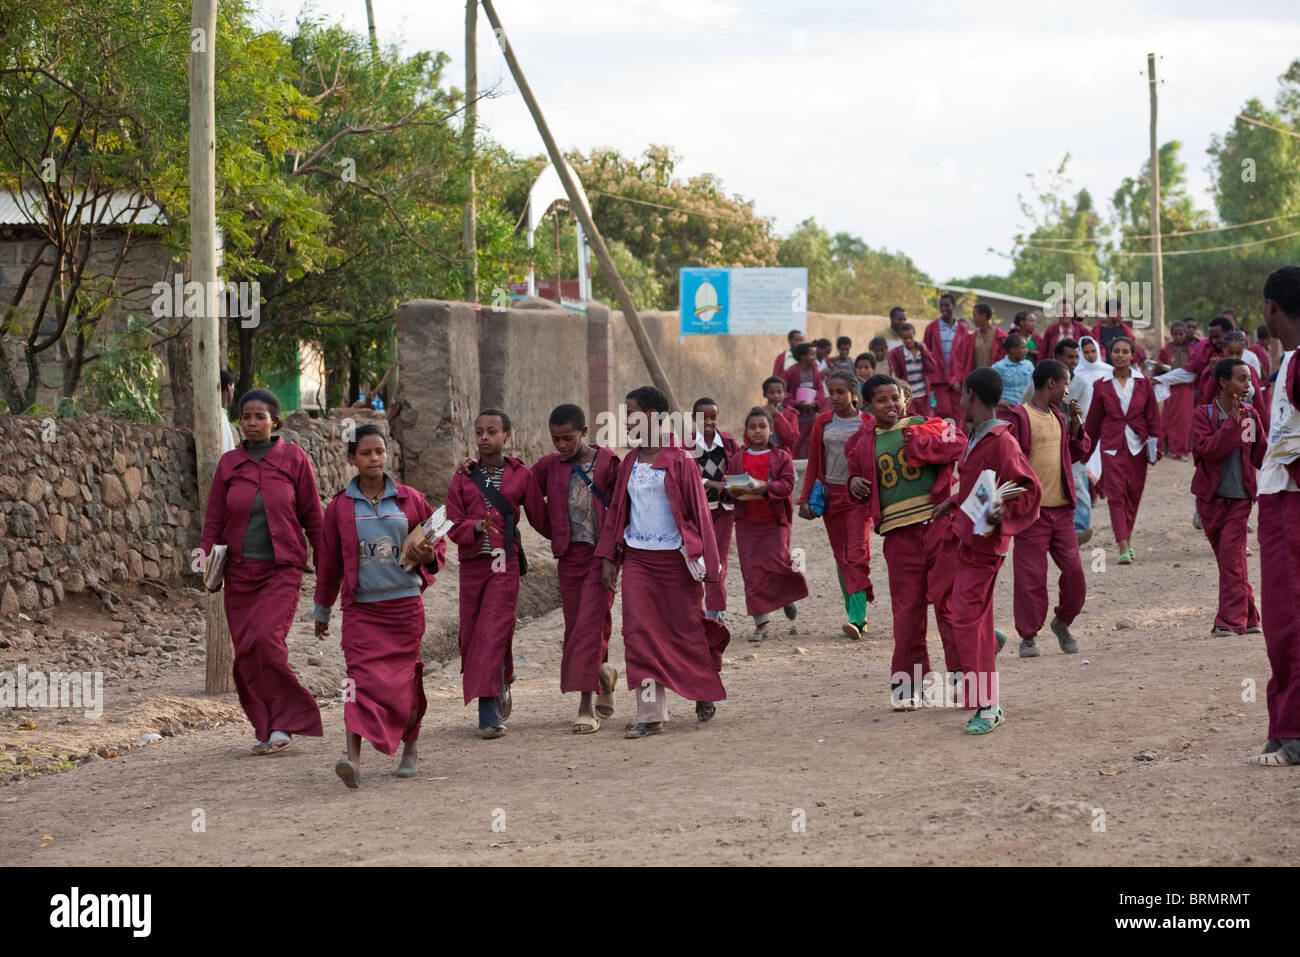 School children dressed in red uniforms going home after school has finished in Lalibela - Stock Image